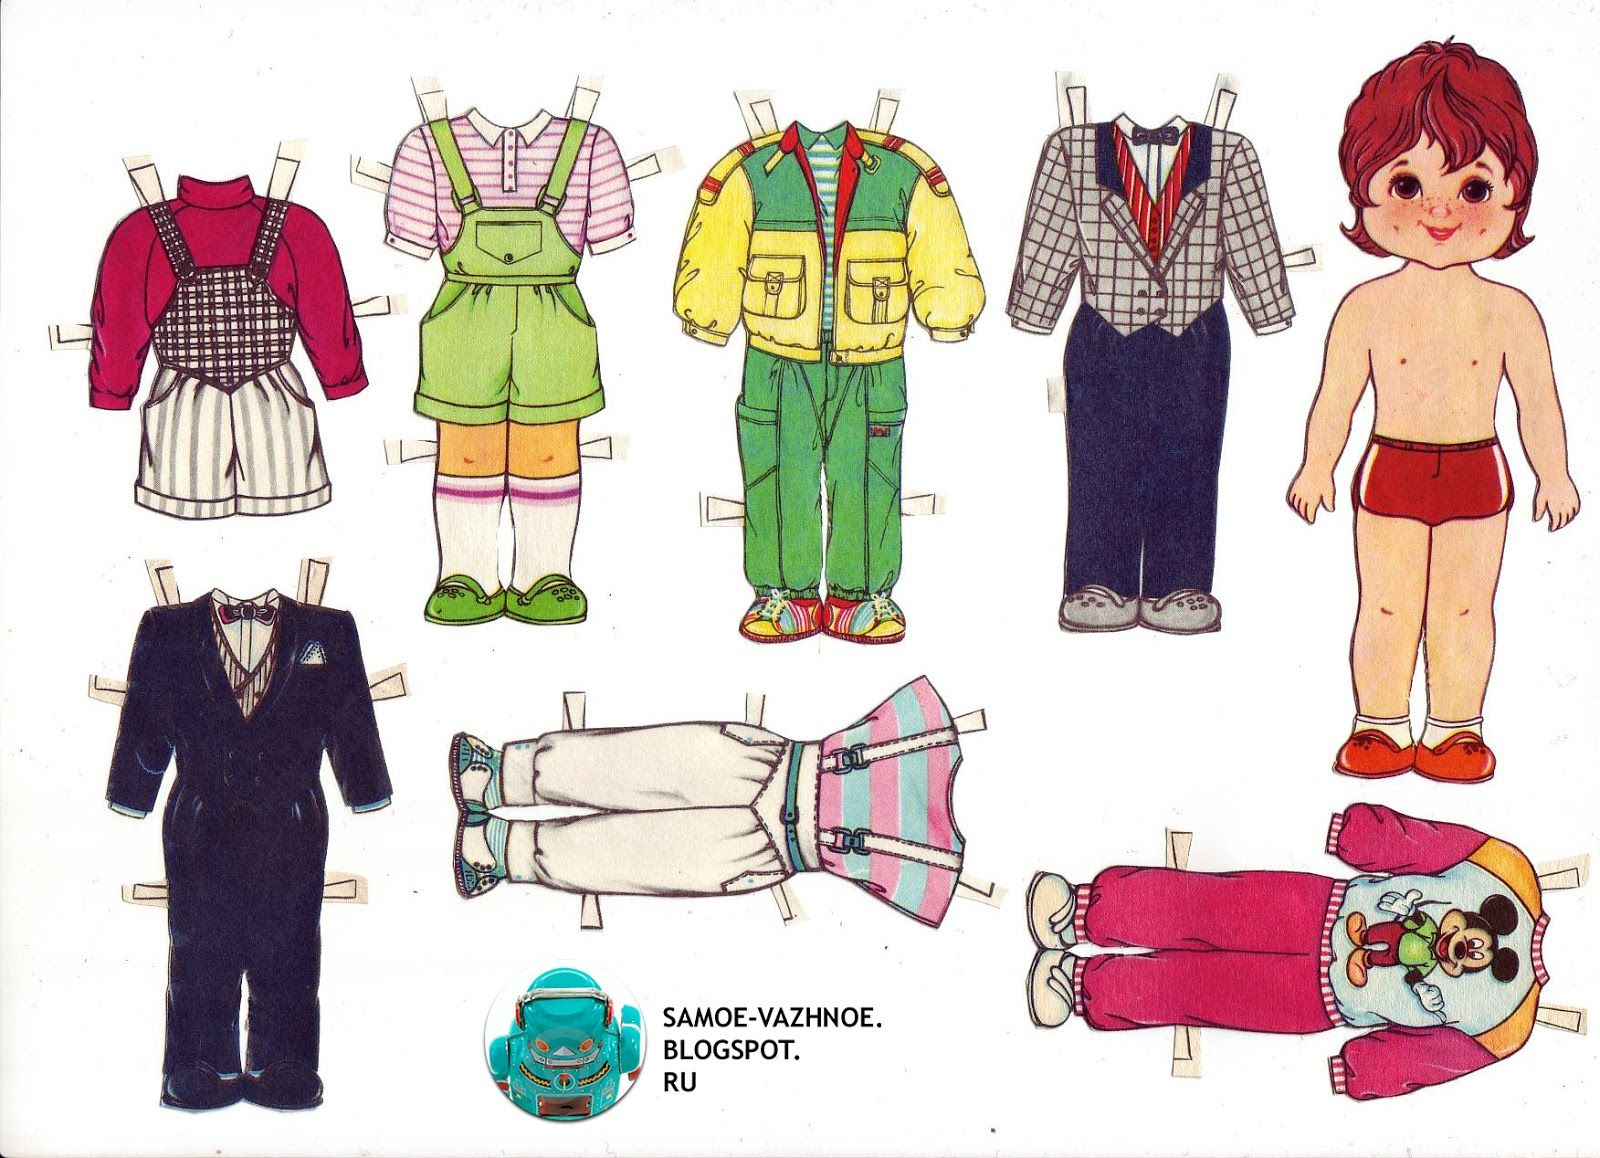 Fantastisch Paperdoll Vorlage Ideen - Entry Level Resume Vorlagen ...